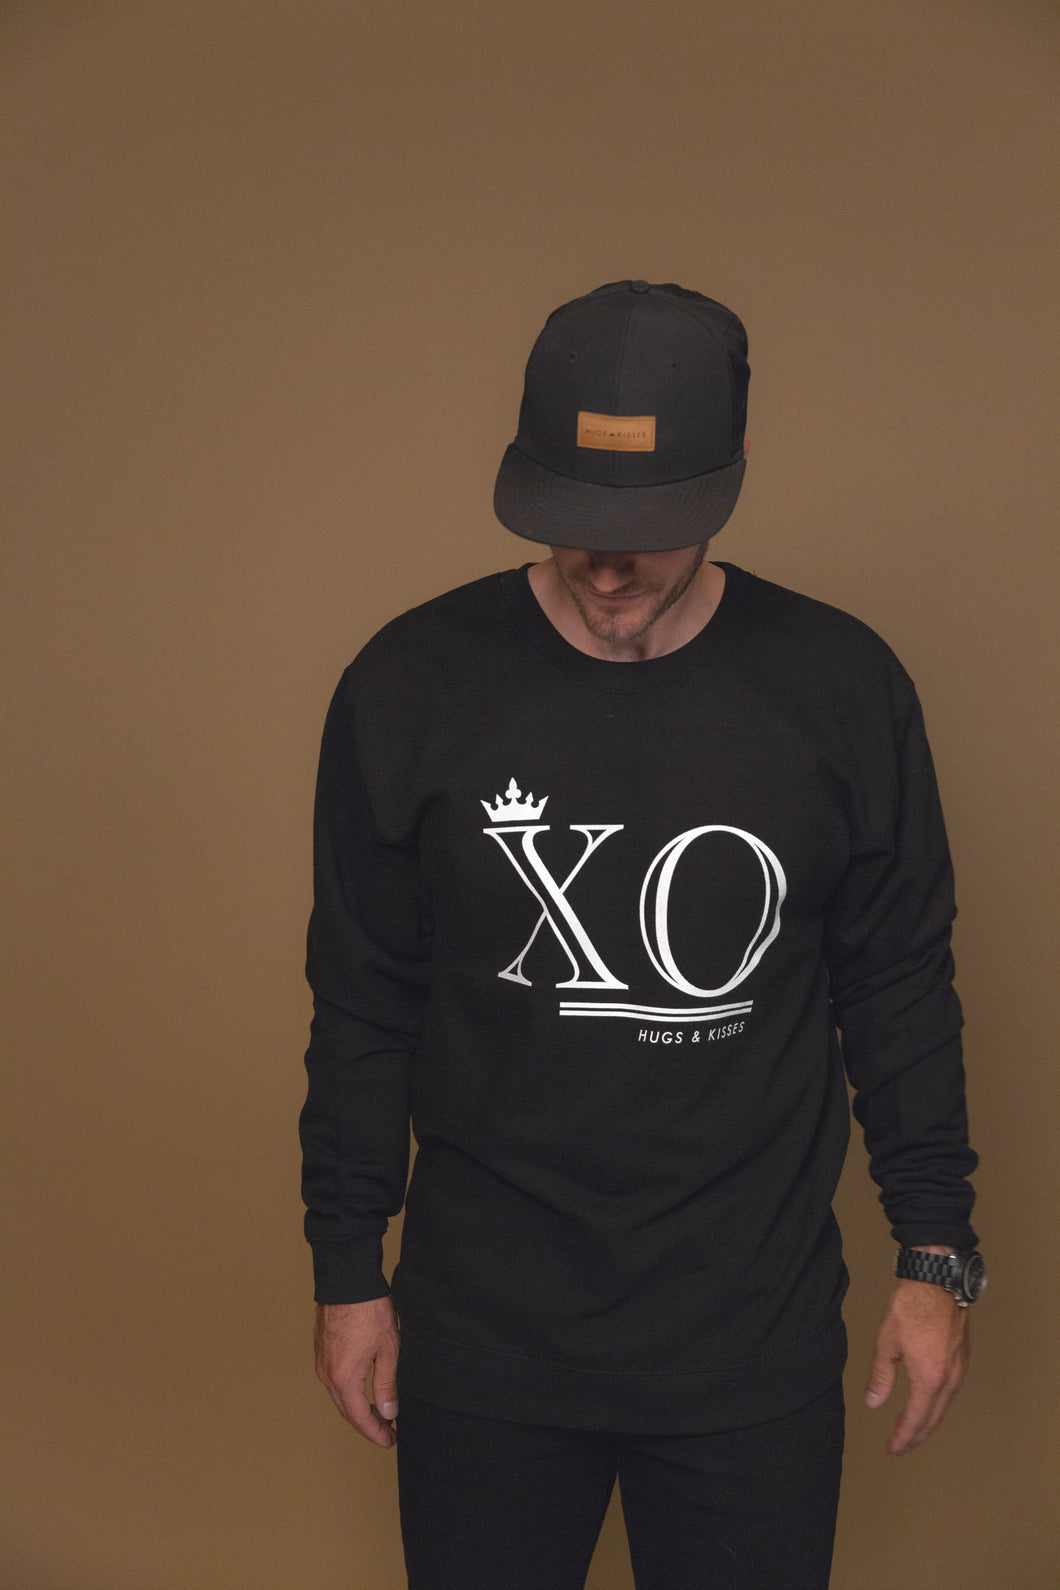 XO Hugs and Kisses Crewneck XO Black